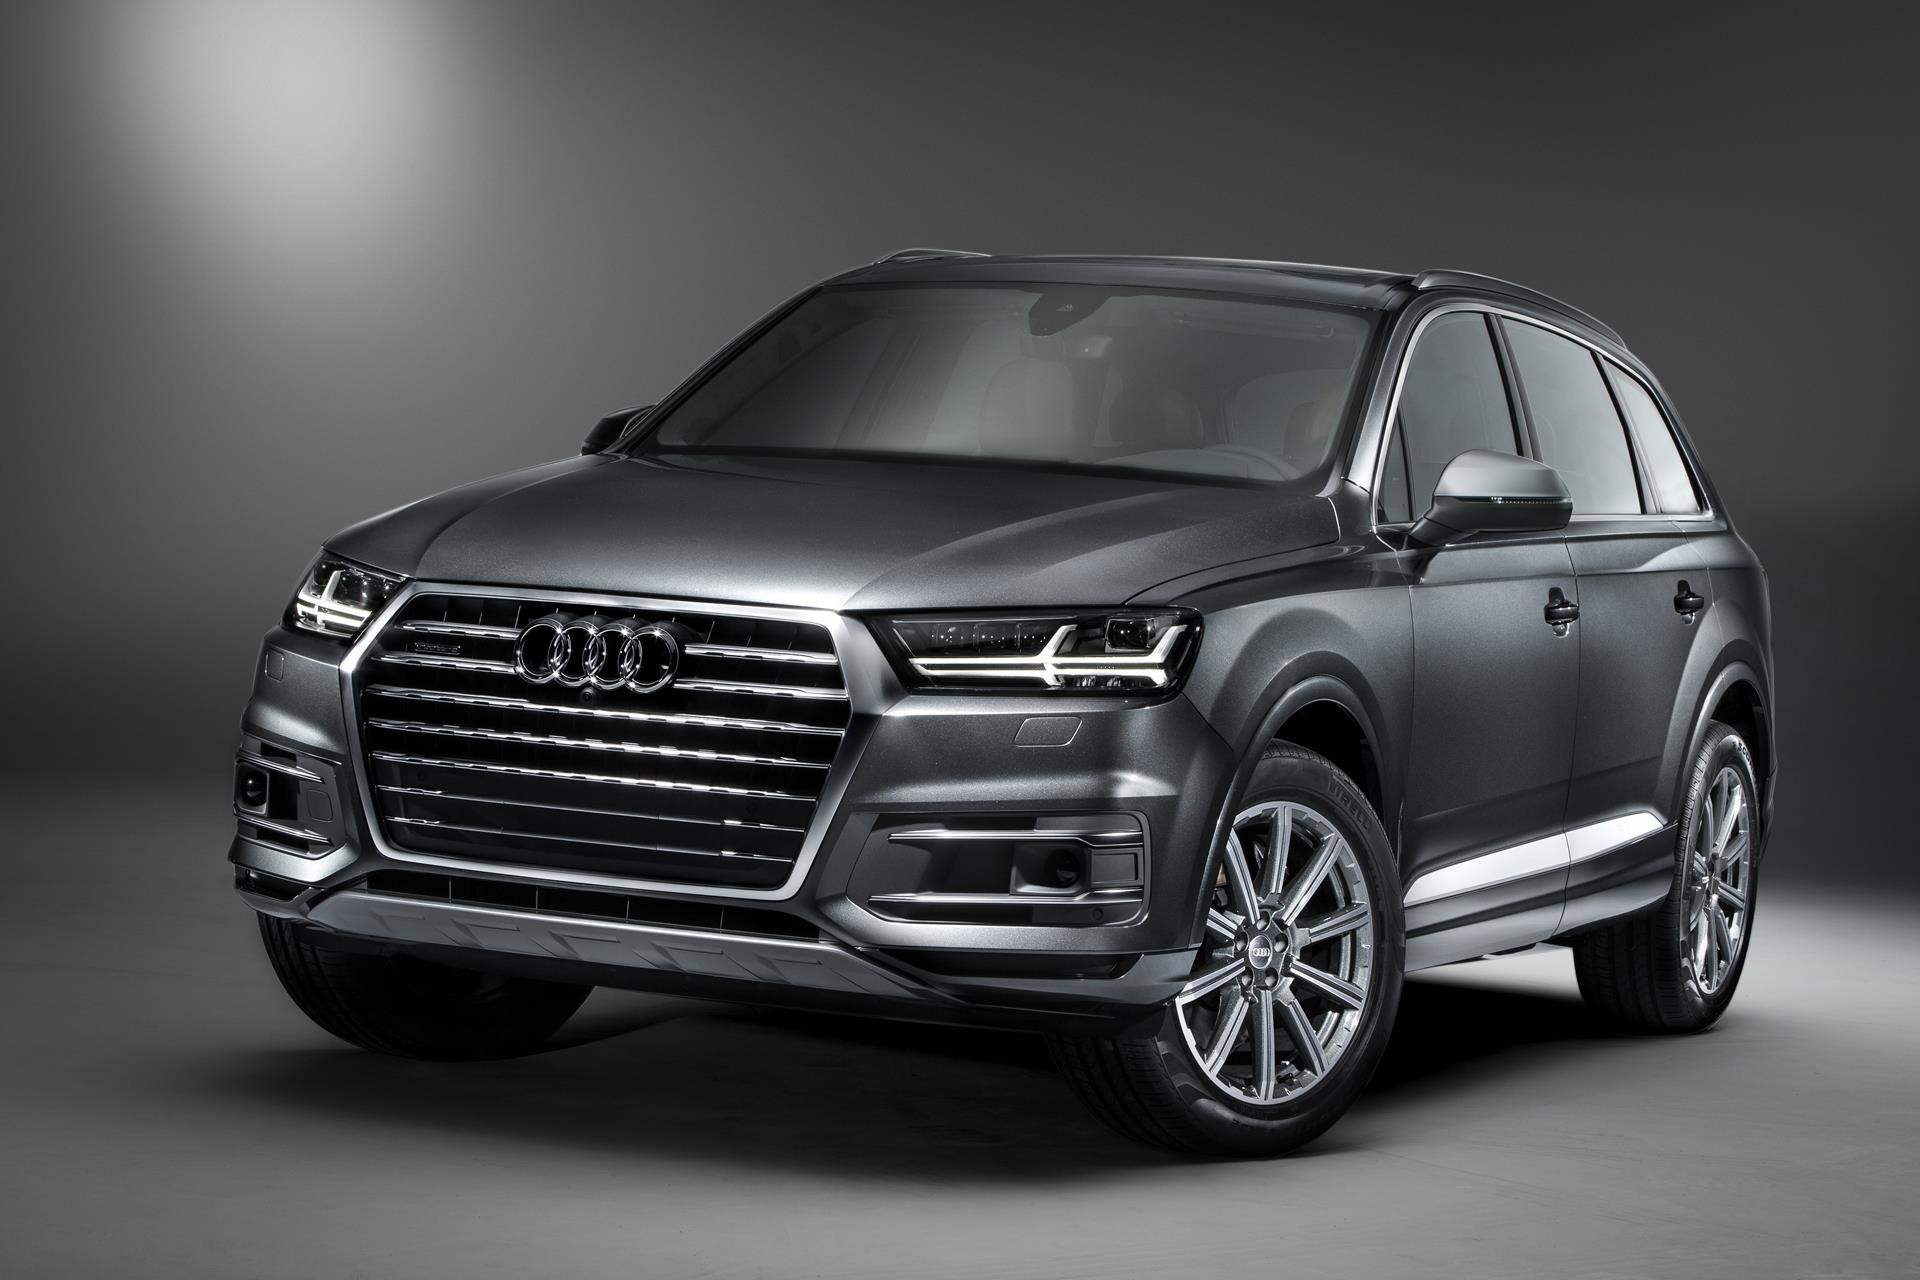 2016 Audi Q7 Technical And Mechanical Specifications